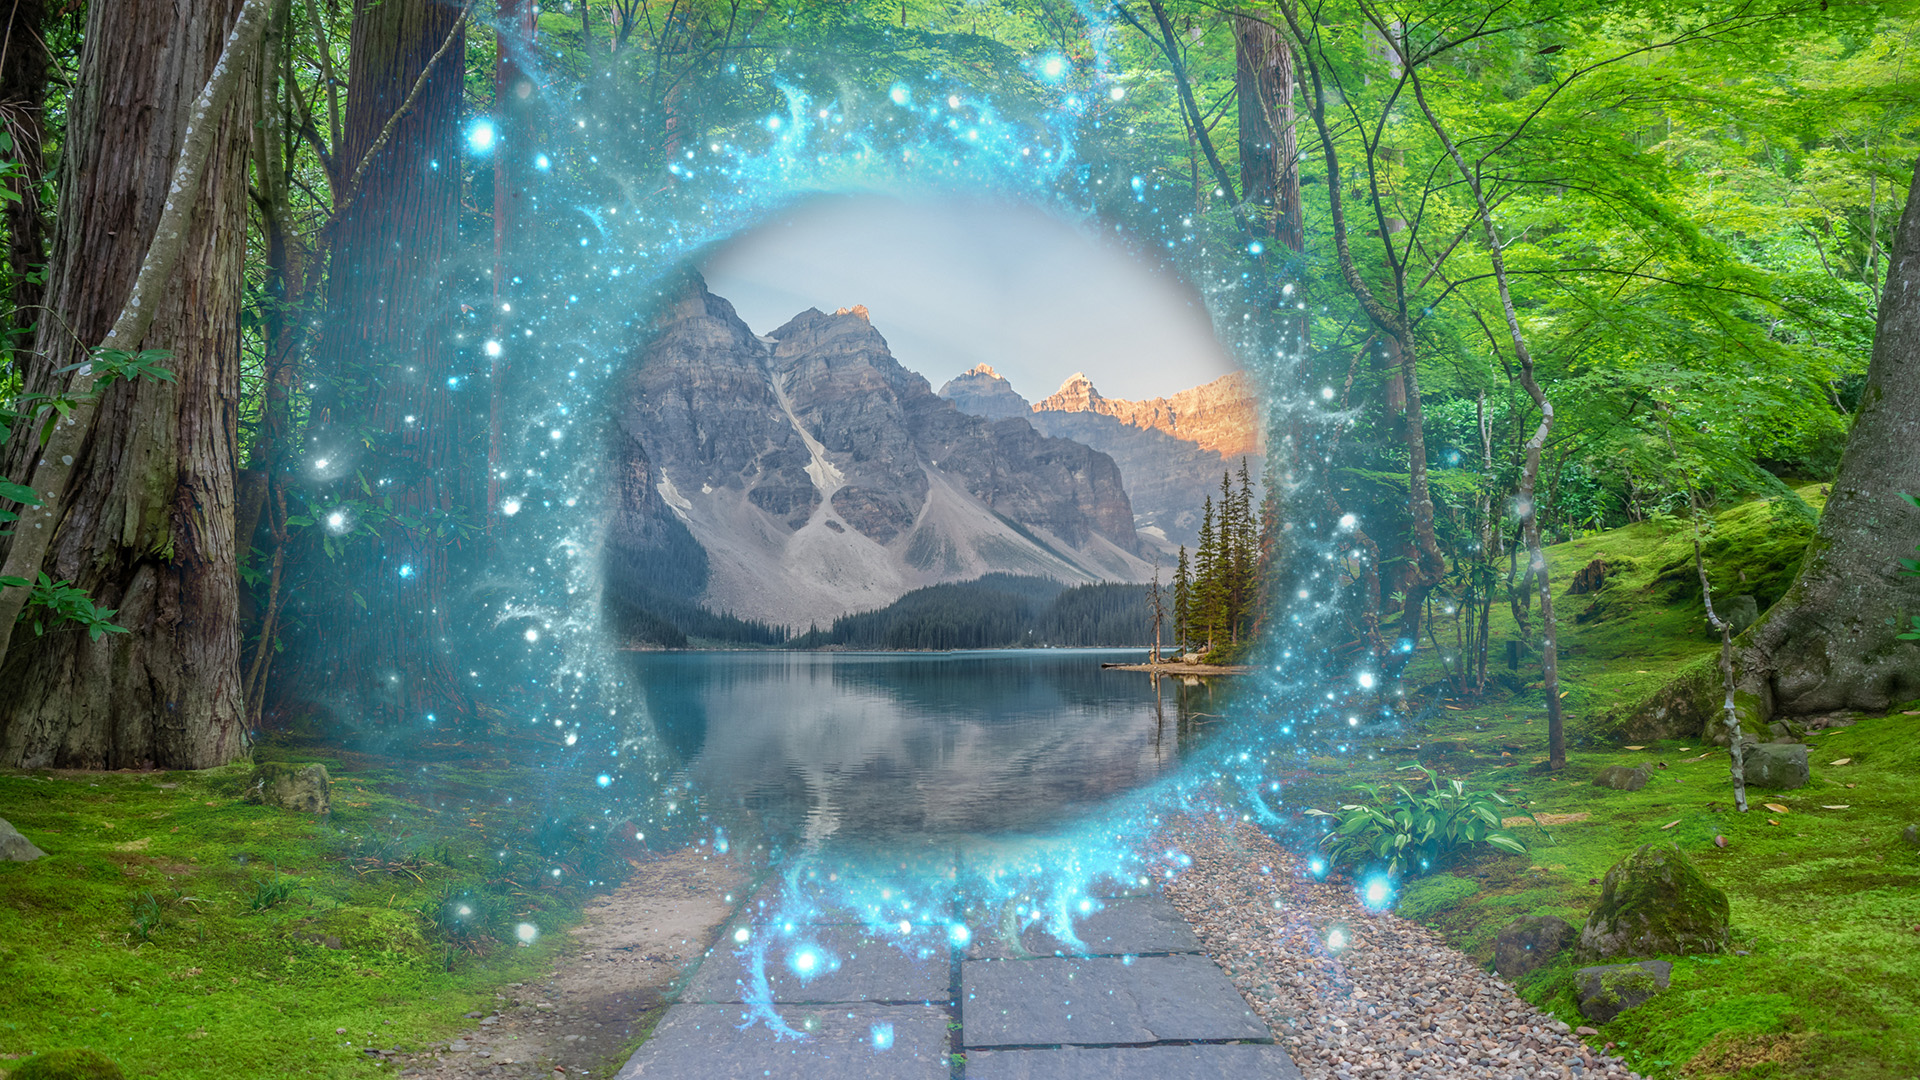 augmented reality magical portal lets people walk into another reality